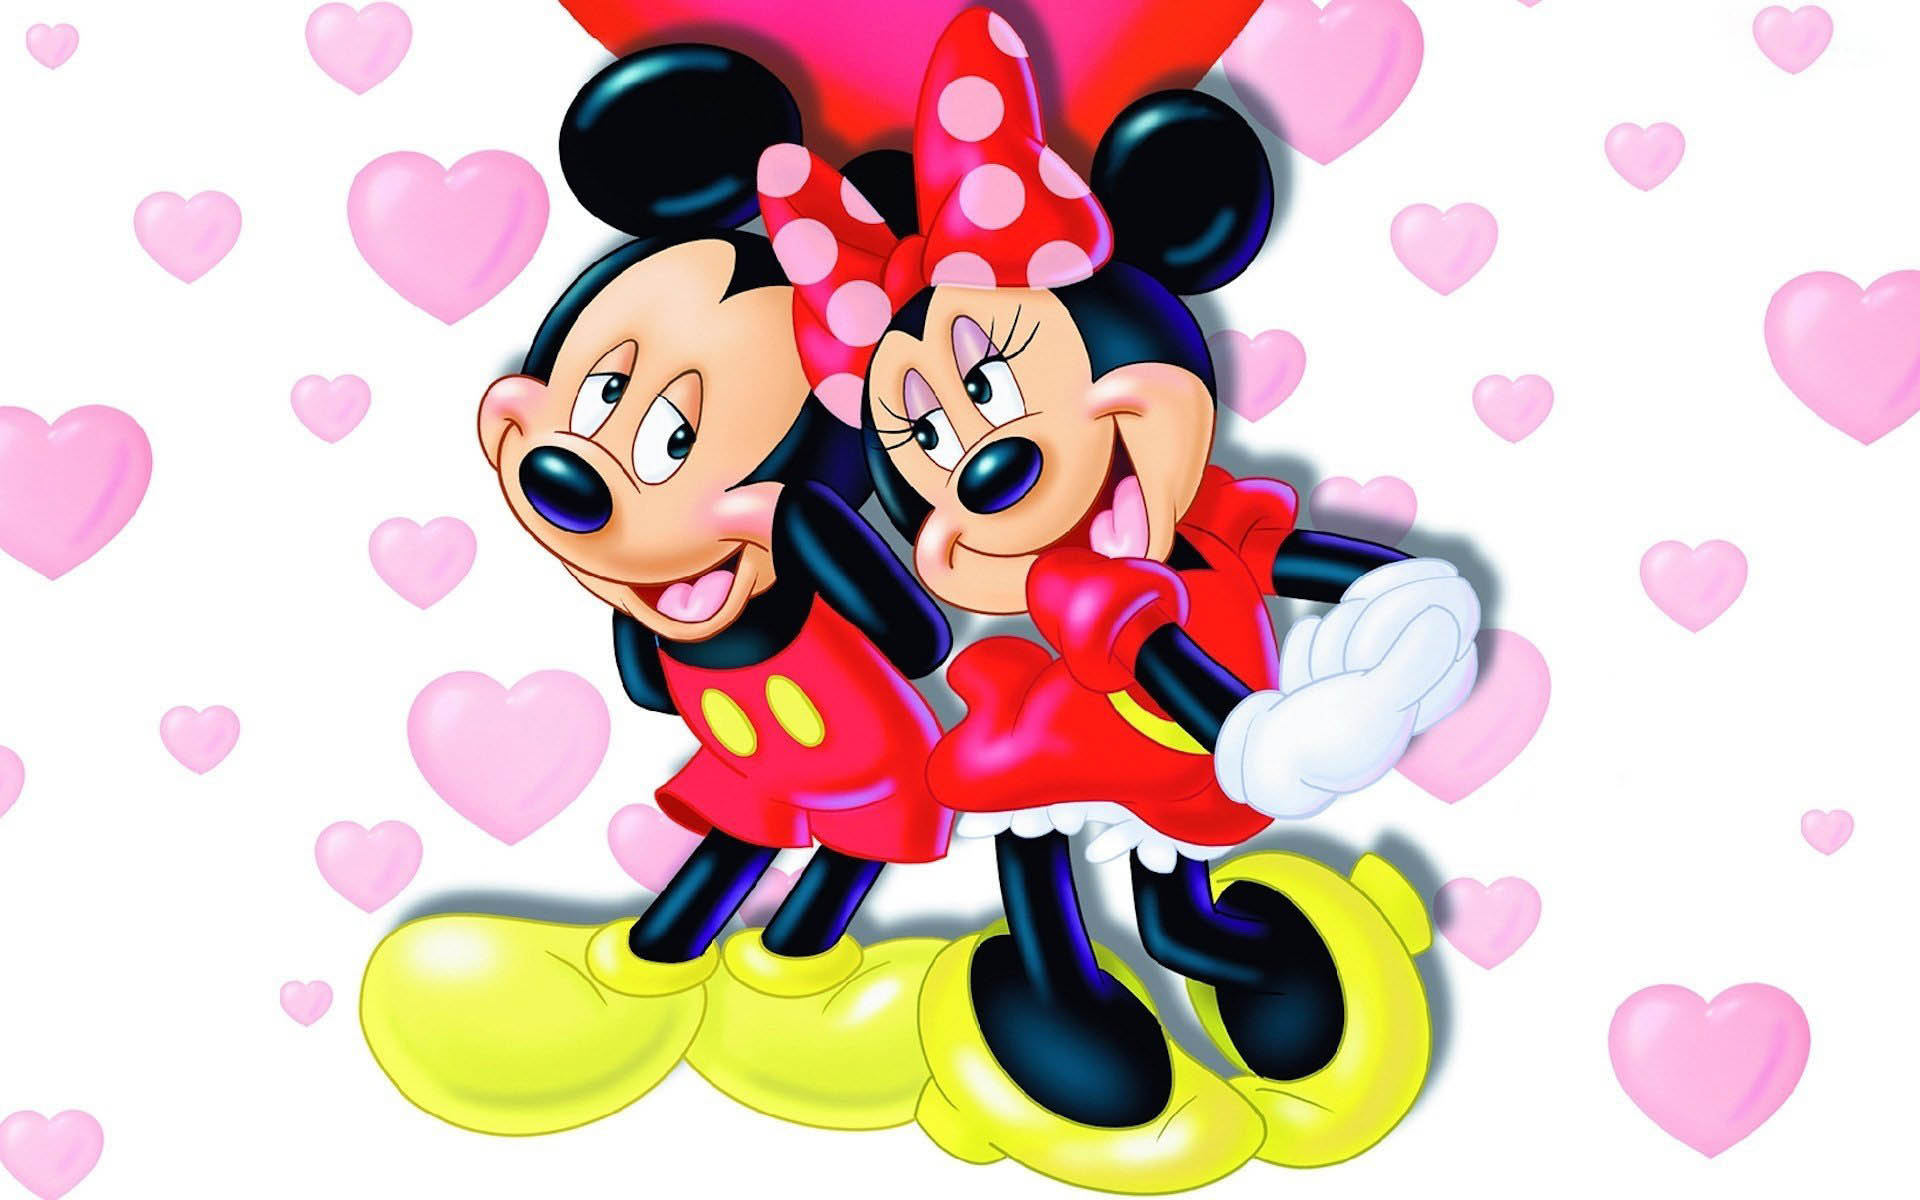 Mickey Mouse Beautiful High Resolution Wallpapers All Hd Wallpapers